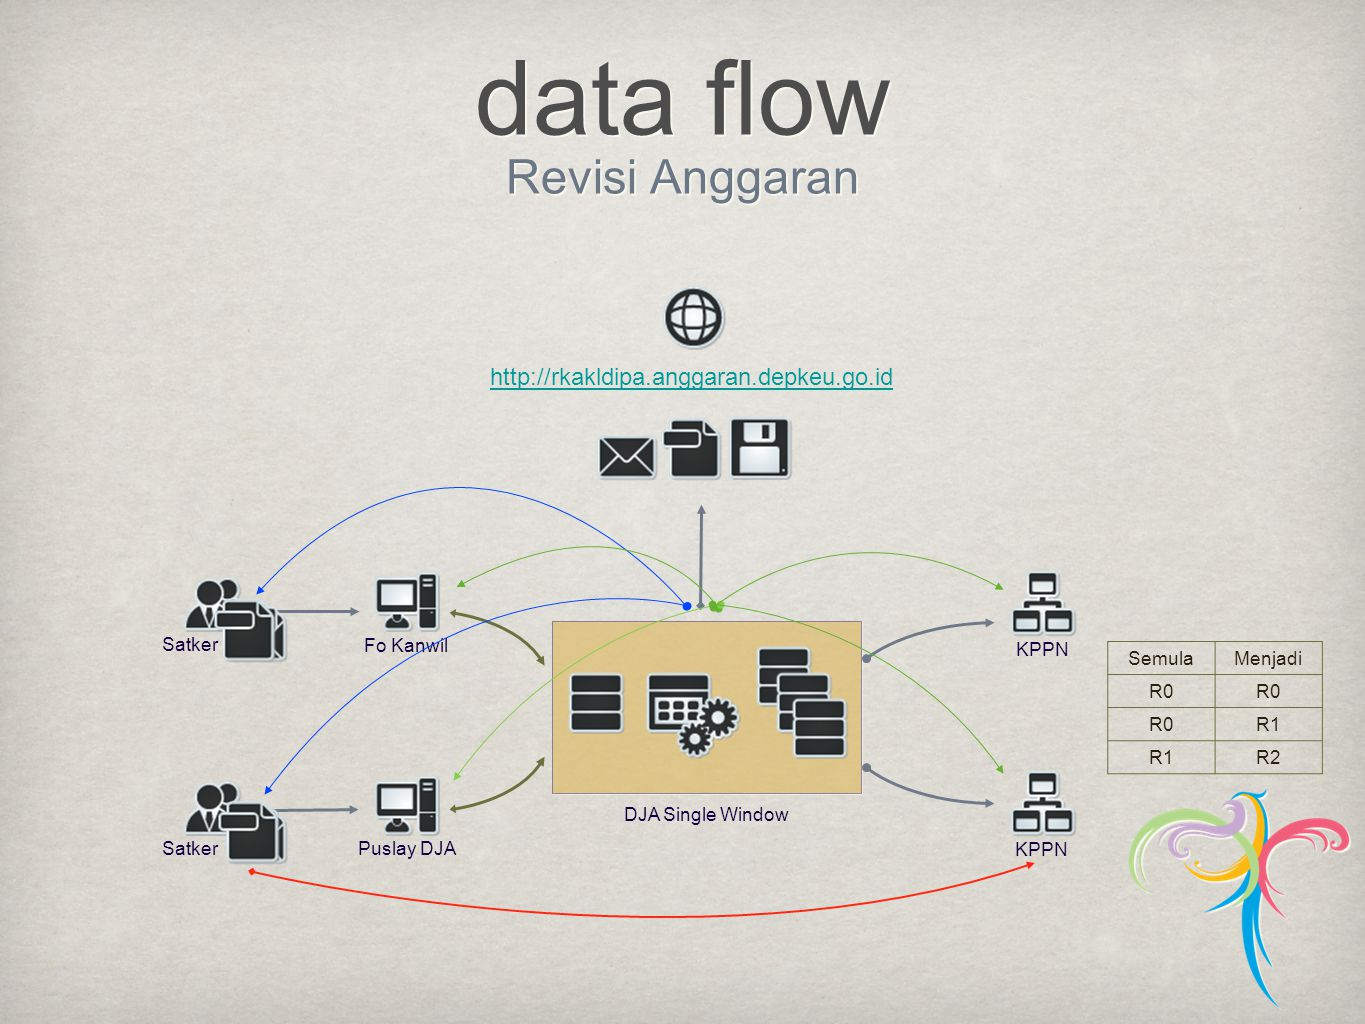 data flow Revisi Anggaran